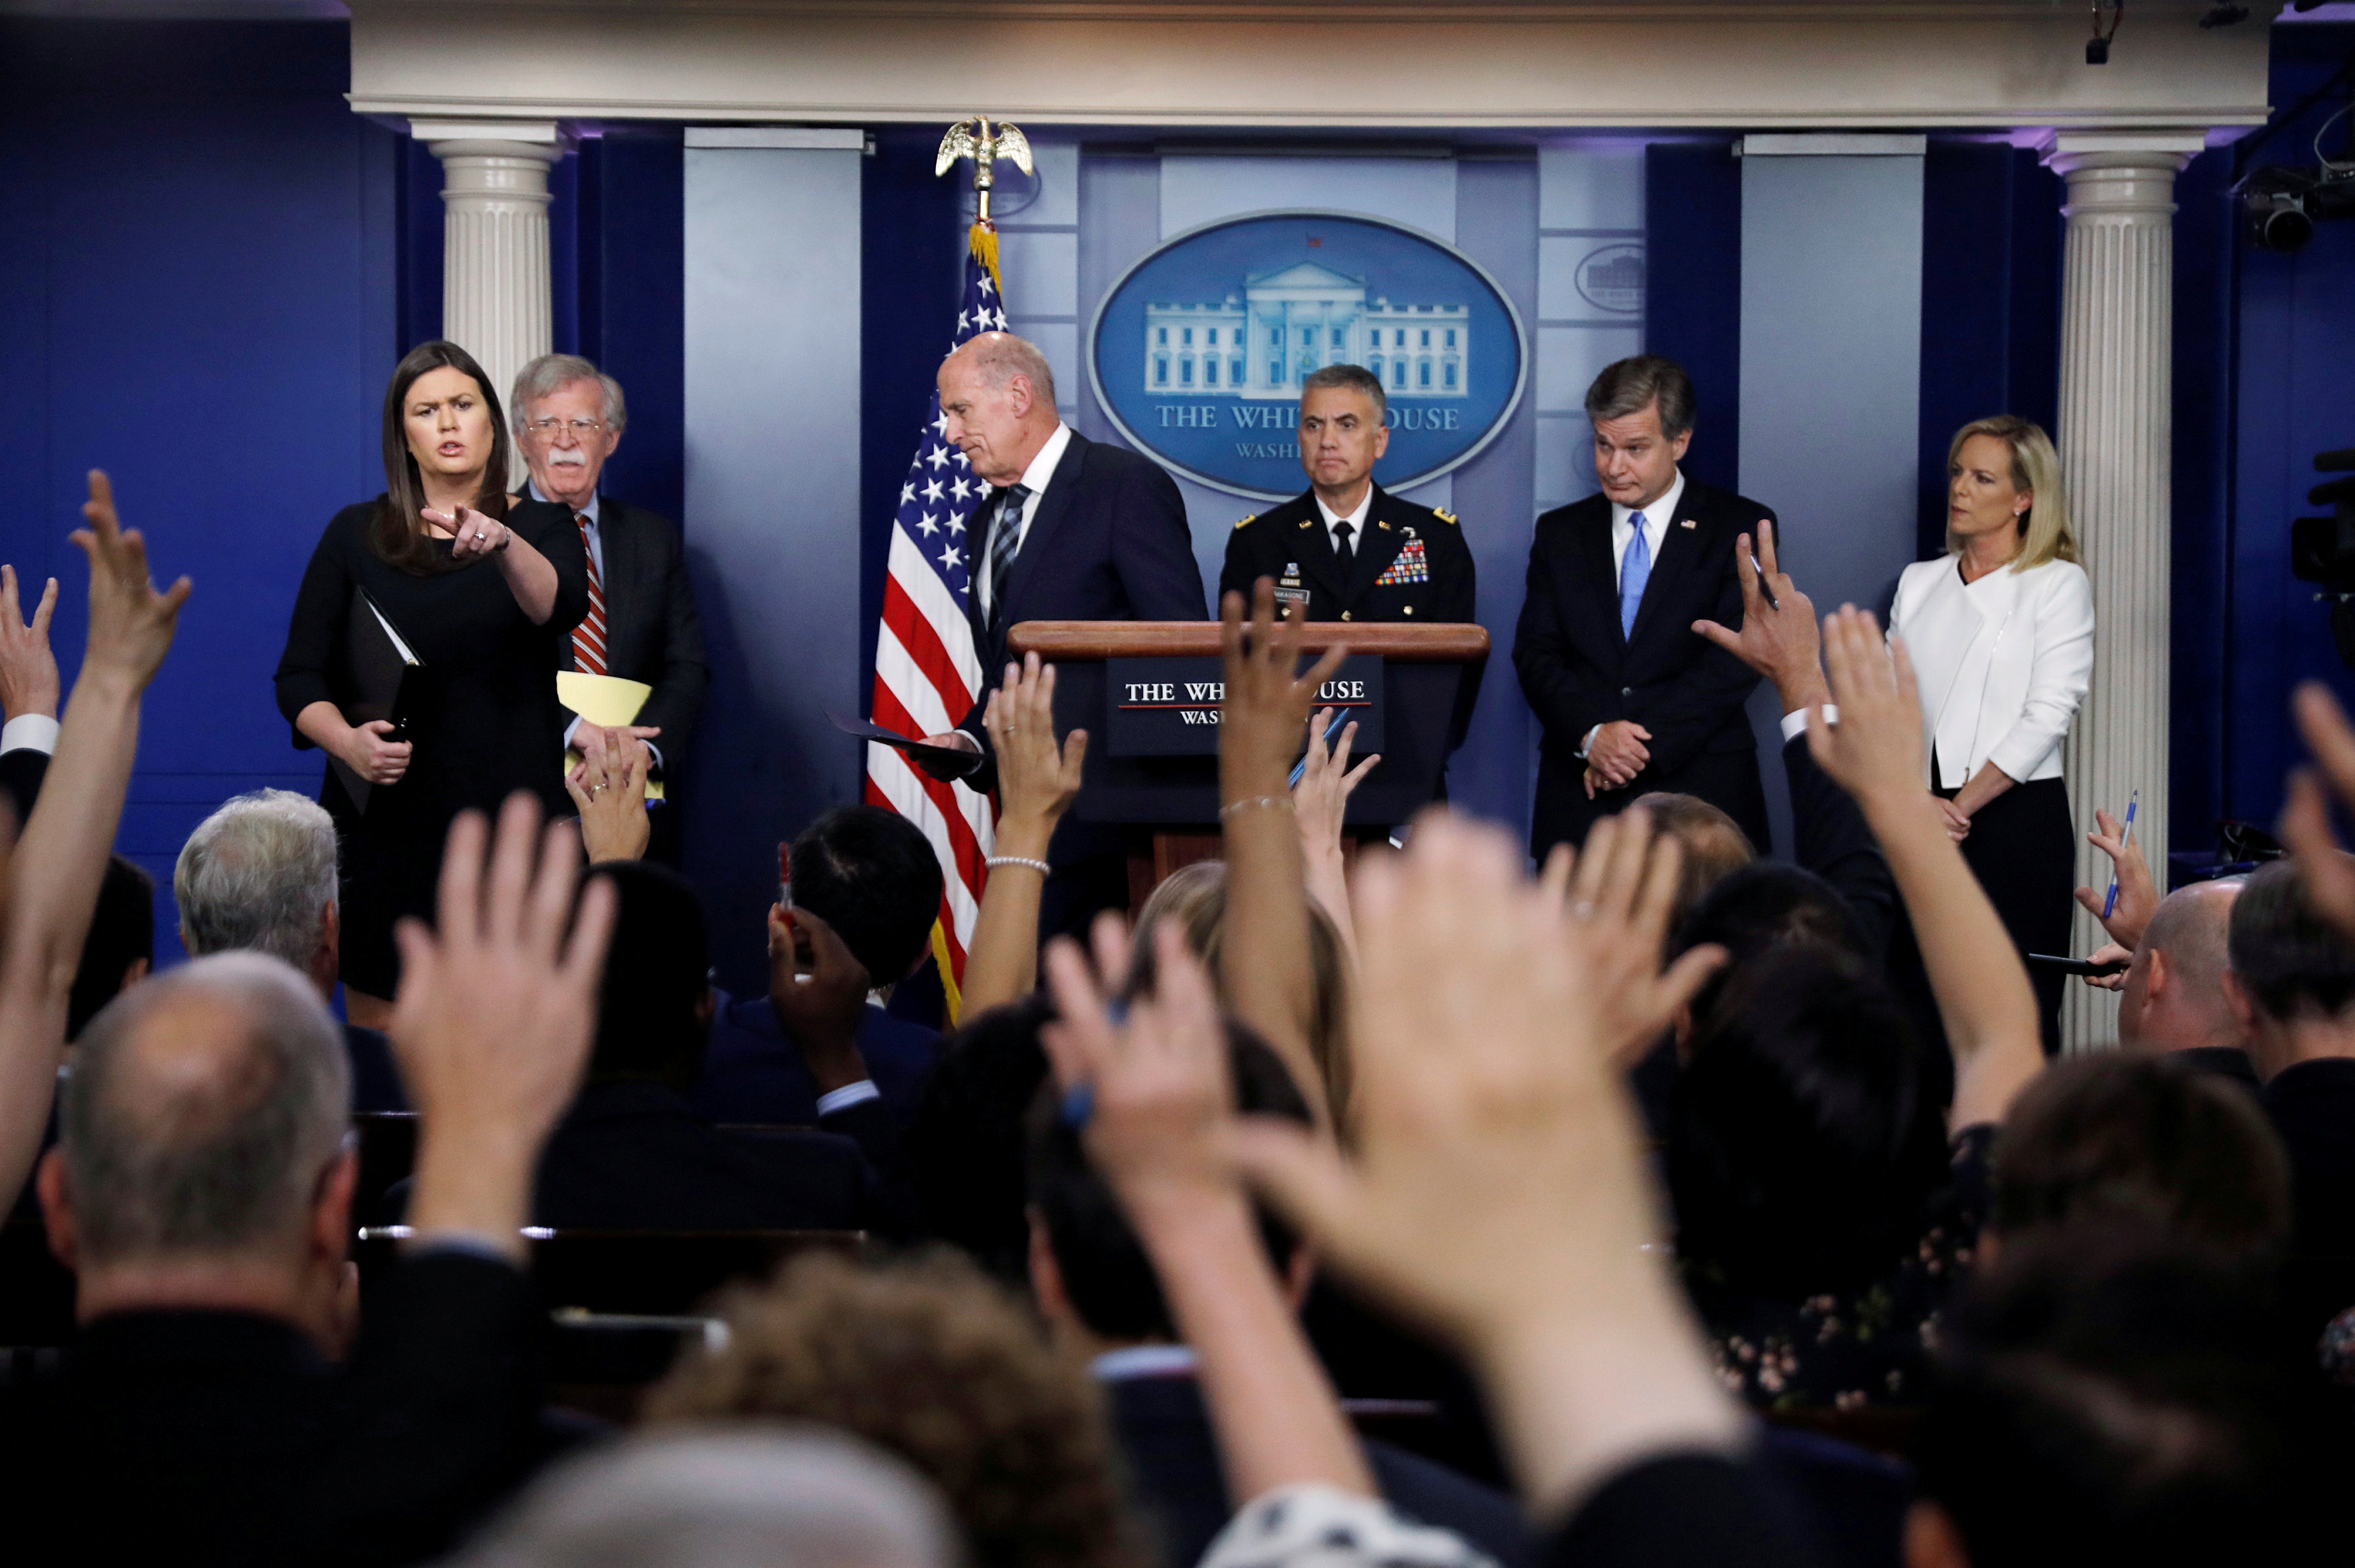 White House Press Secretary Sarah Huckabee Sanders points to questioners as National Security Advisor John Bolton, U.S. Director of National Intelligence Dan Coats, National Security Agency (NSA) Director General Paul Nakasone, FBI Director Christopher Wray and Department of Homeland Security (DHS) Secretary Kirstjen Nielsen hold a briefing on election security in the White House press briefing room at the White House in Washington, U.S., August 2, 2018.  REUTERS/Carlos Barria      TPX IMAGES OF THE DAY - RC1CC3F64980